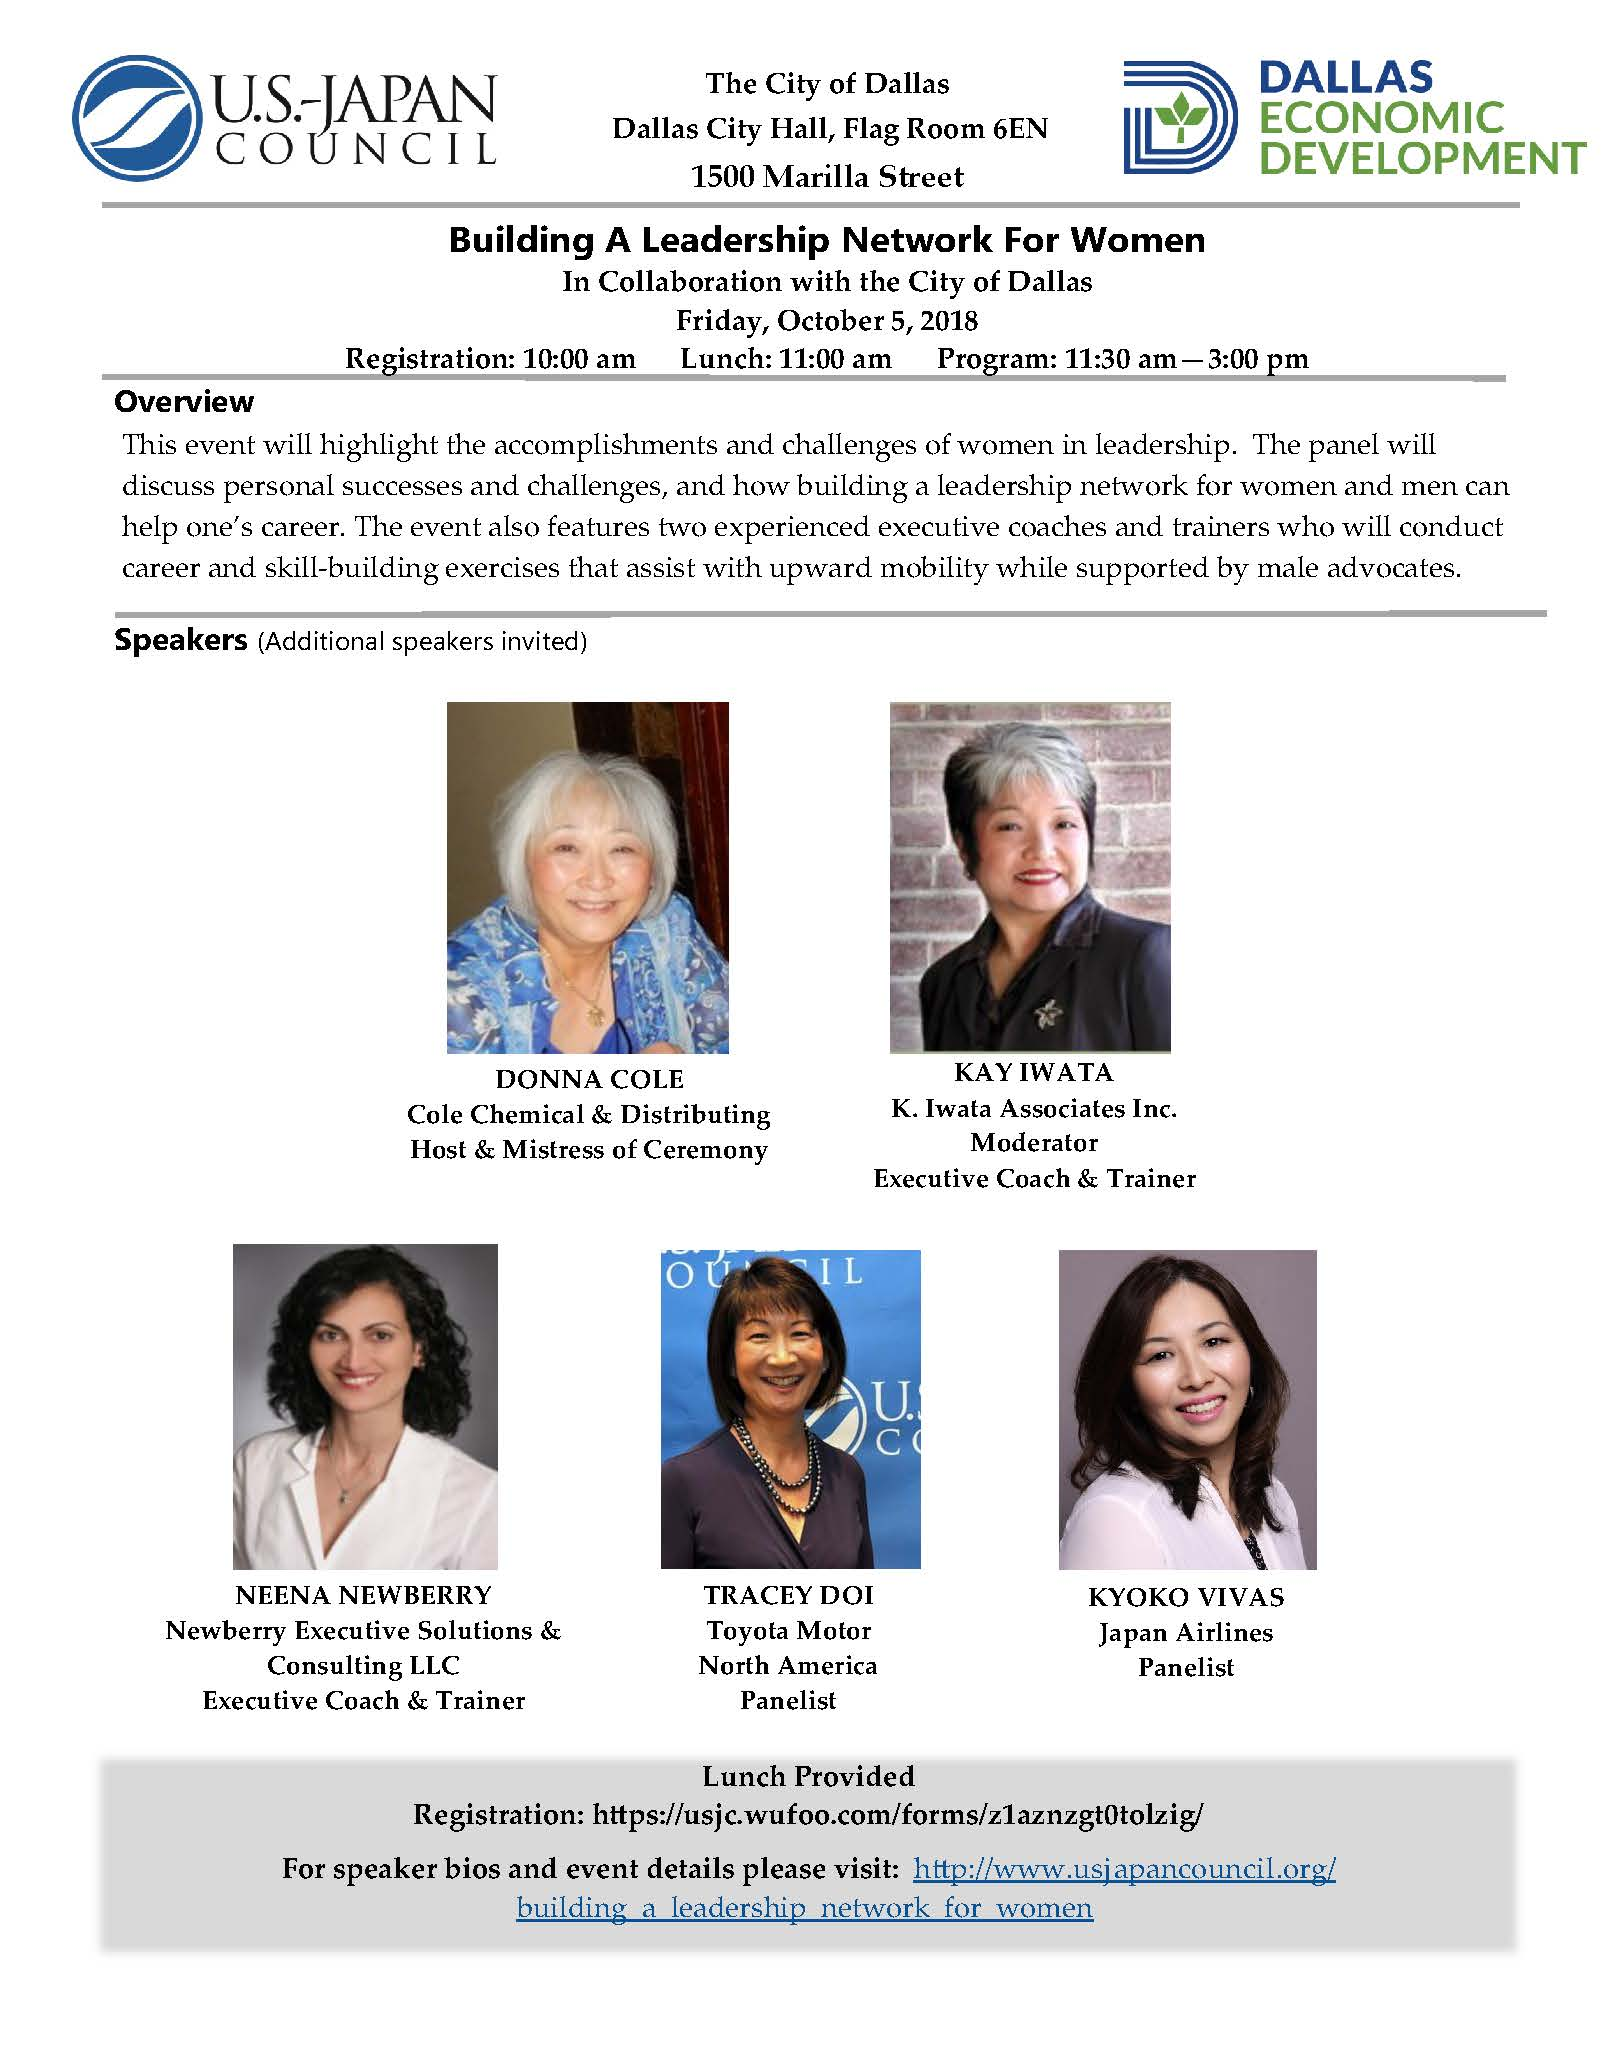 Building A Leadership Network For Women in Collaboration with the City of Dallas